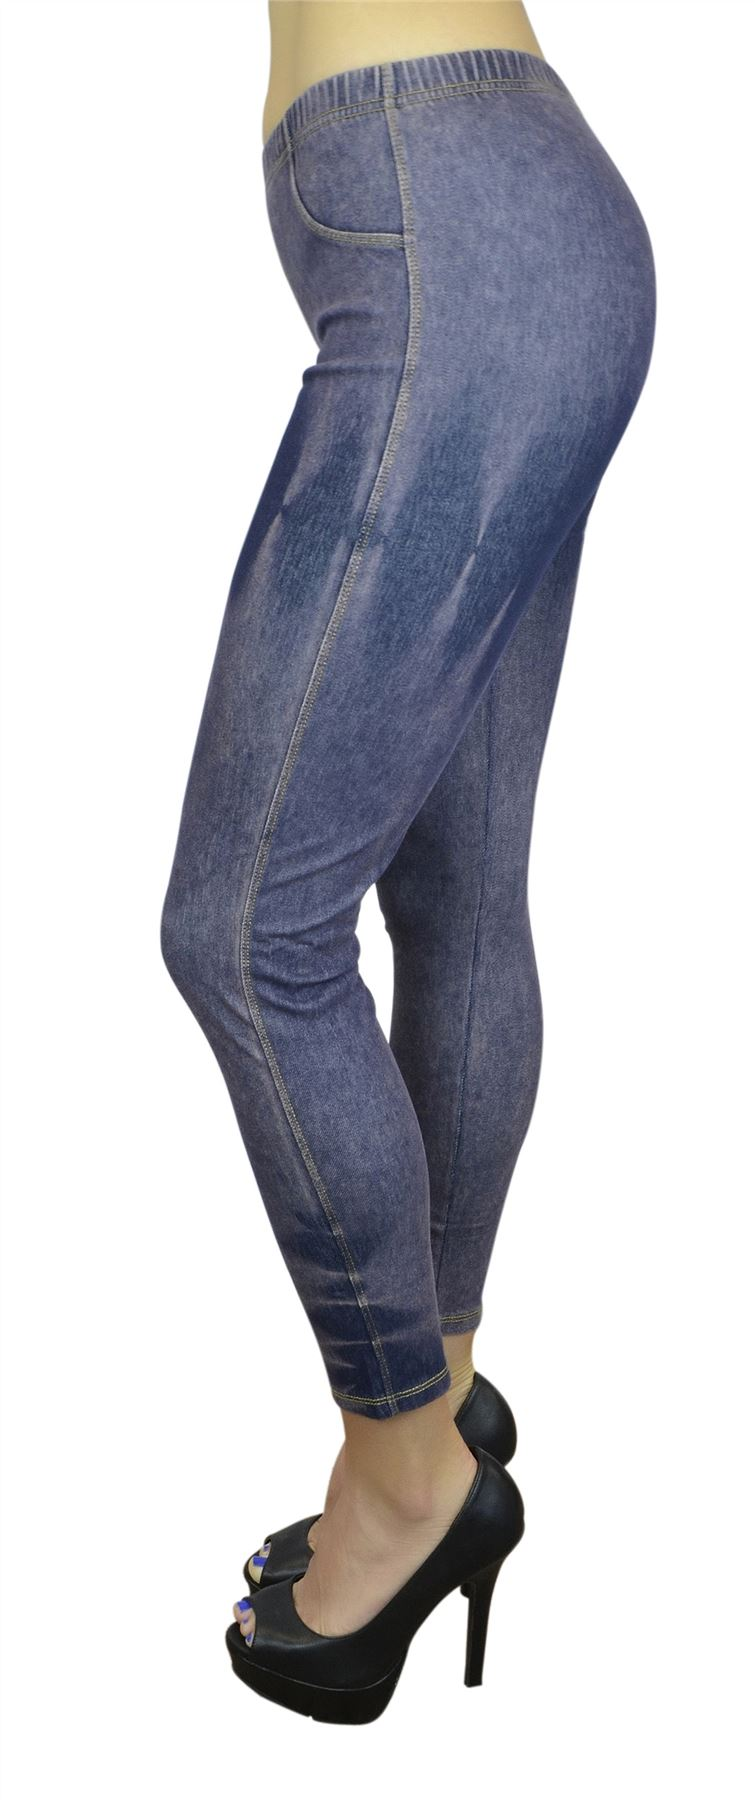 Belle Donne Women's Legging Jeggings Footless - Distressed Blue